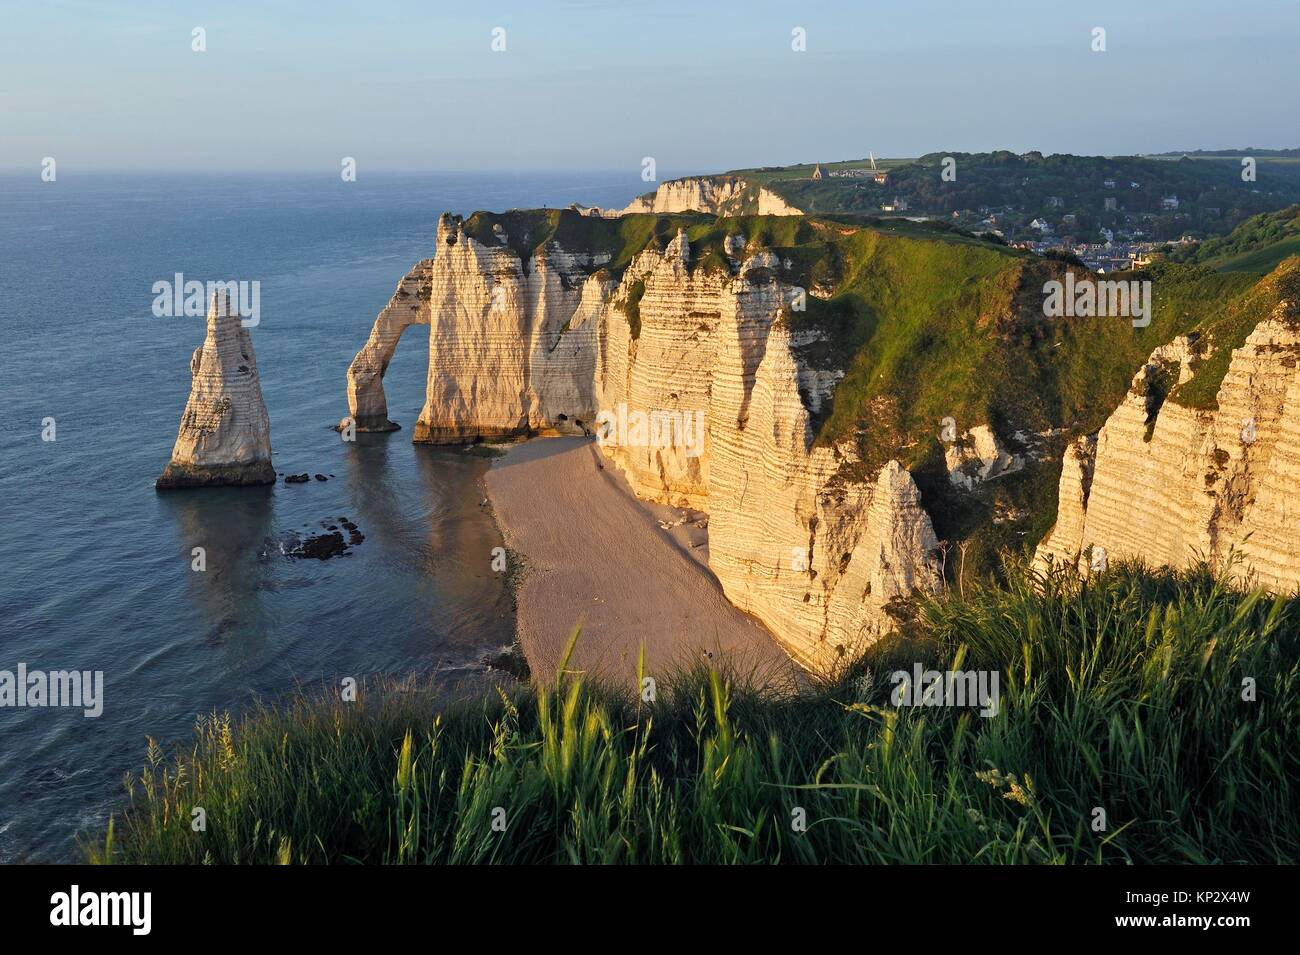 chalk cliffs with arch and ´´l´Aiguille´´ (the Needle), Etretat, Seine-Maritime department, - Stock Image